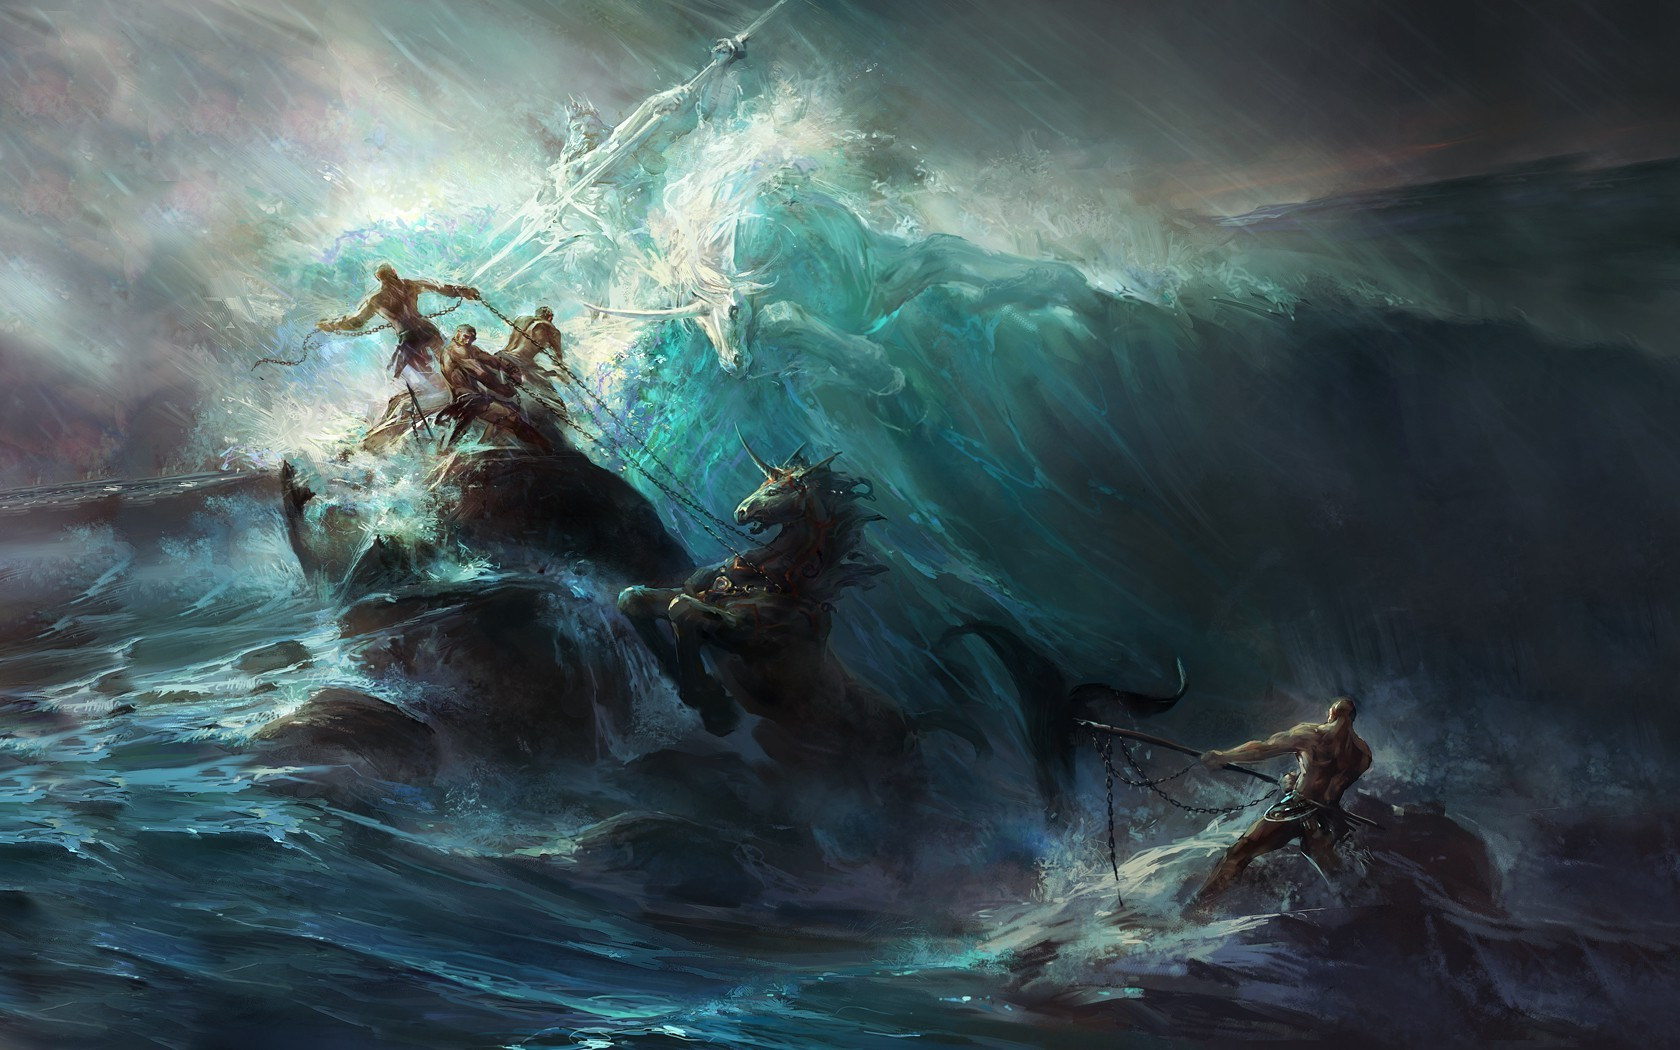 Falling In Reverse Computer Wallpaper Fantasy Art Painting Artwork Poseidon Wallpapers Hd